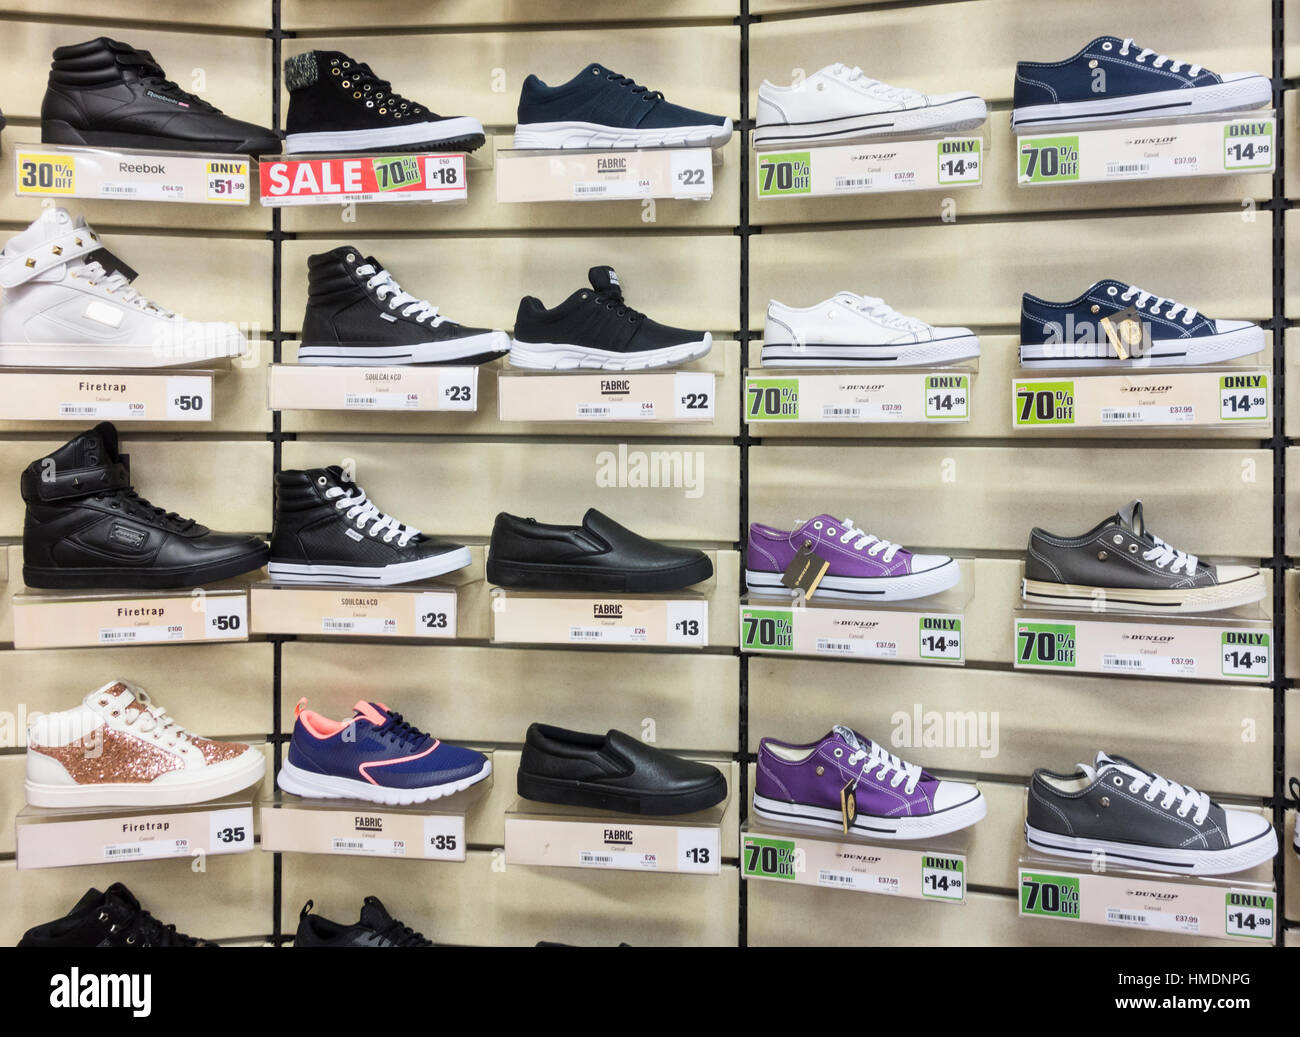 Shoe display in Sports Direct store. UK